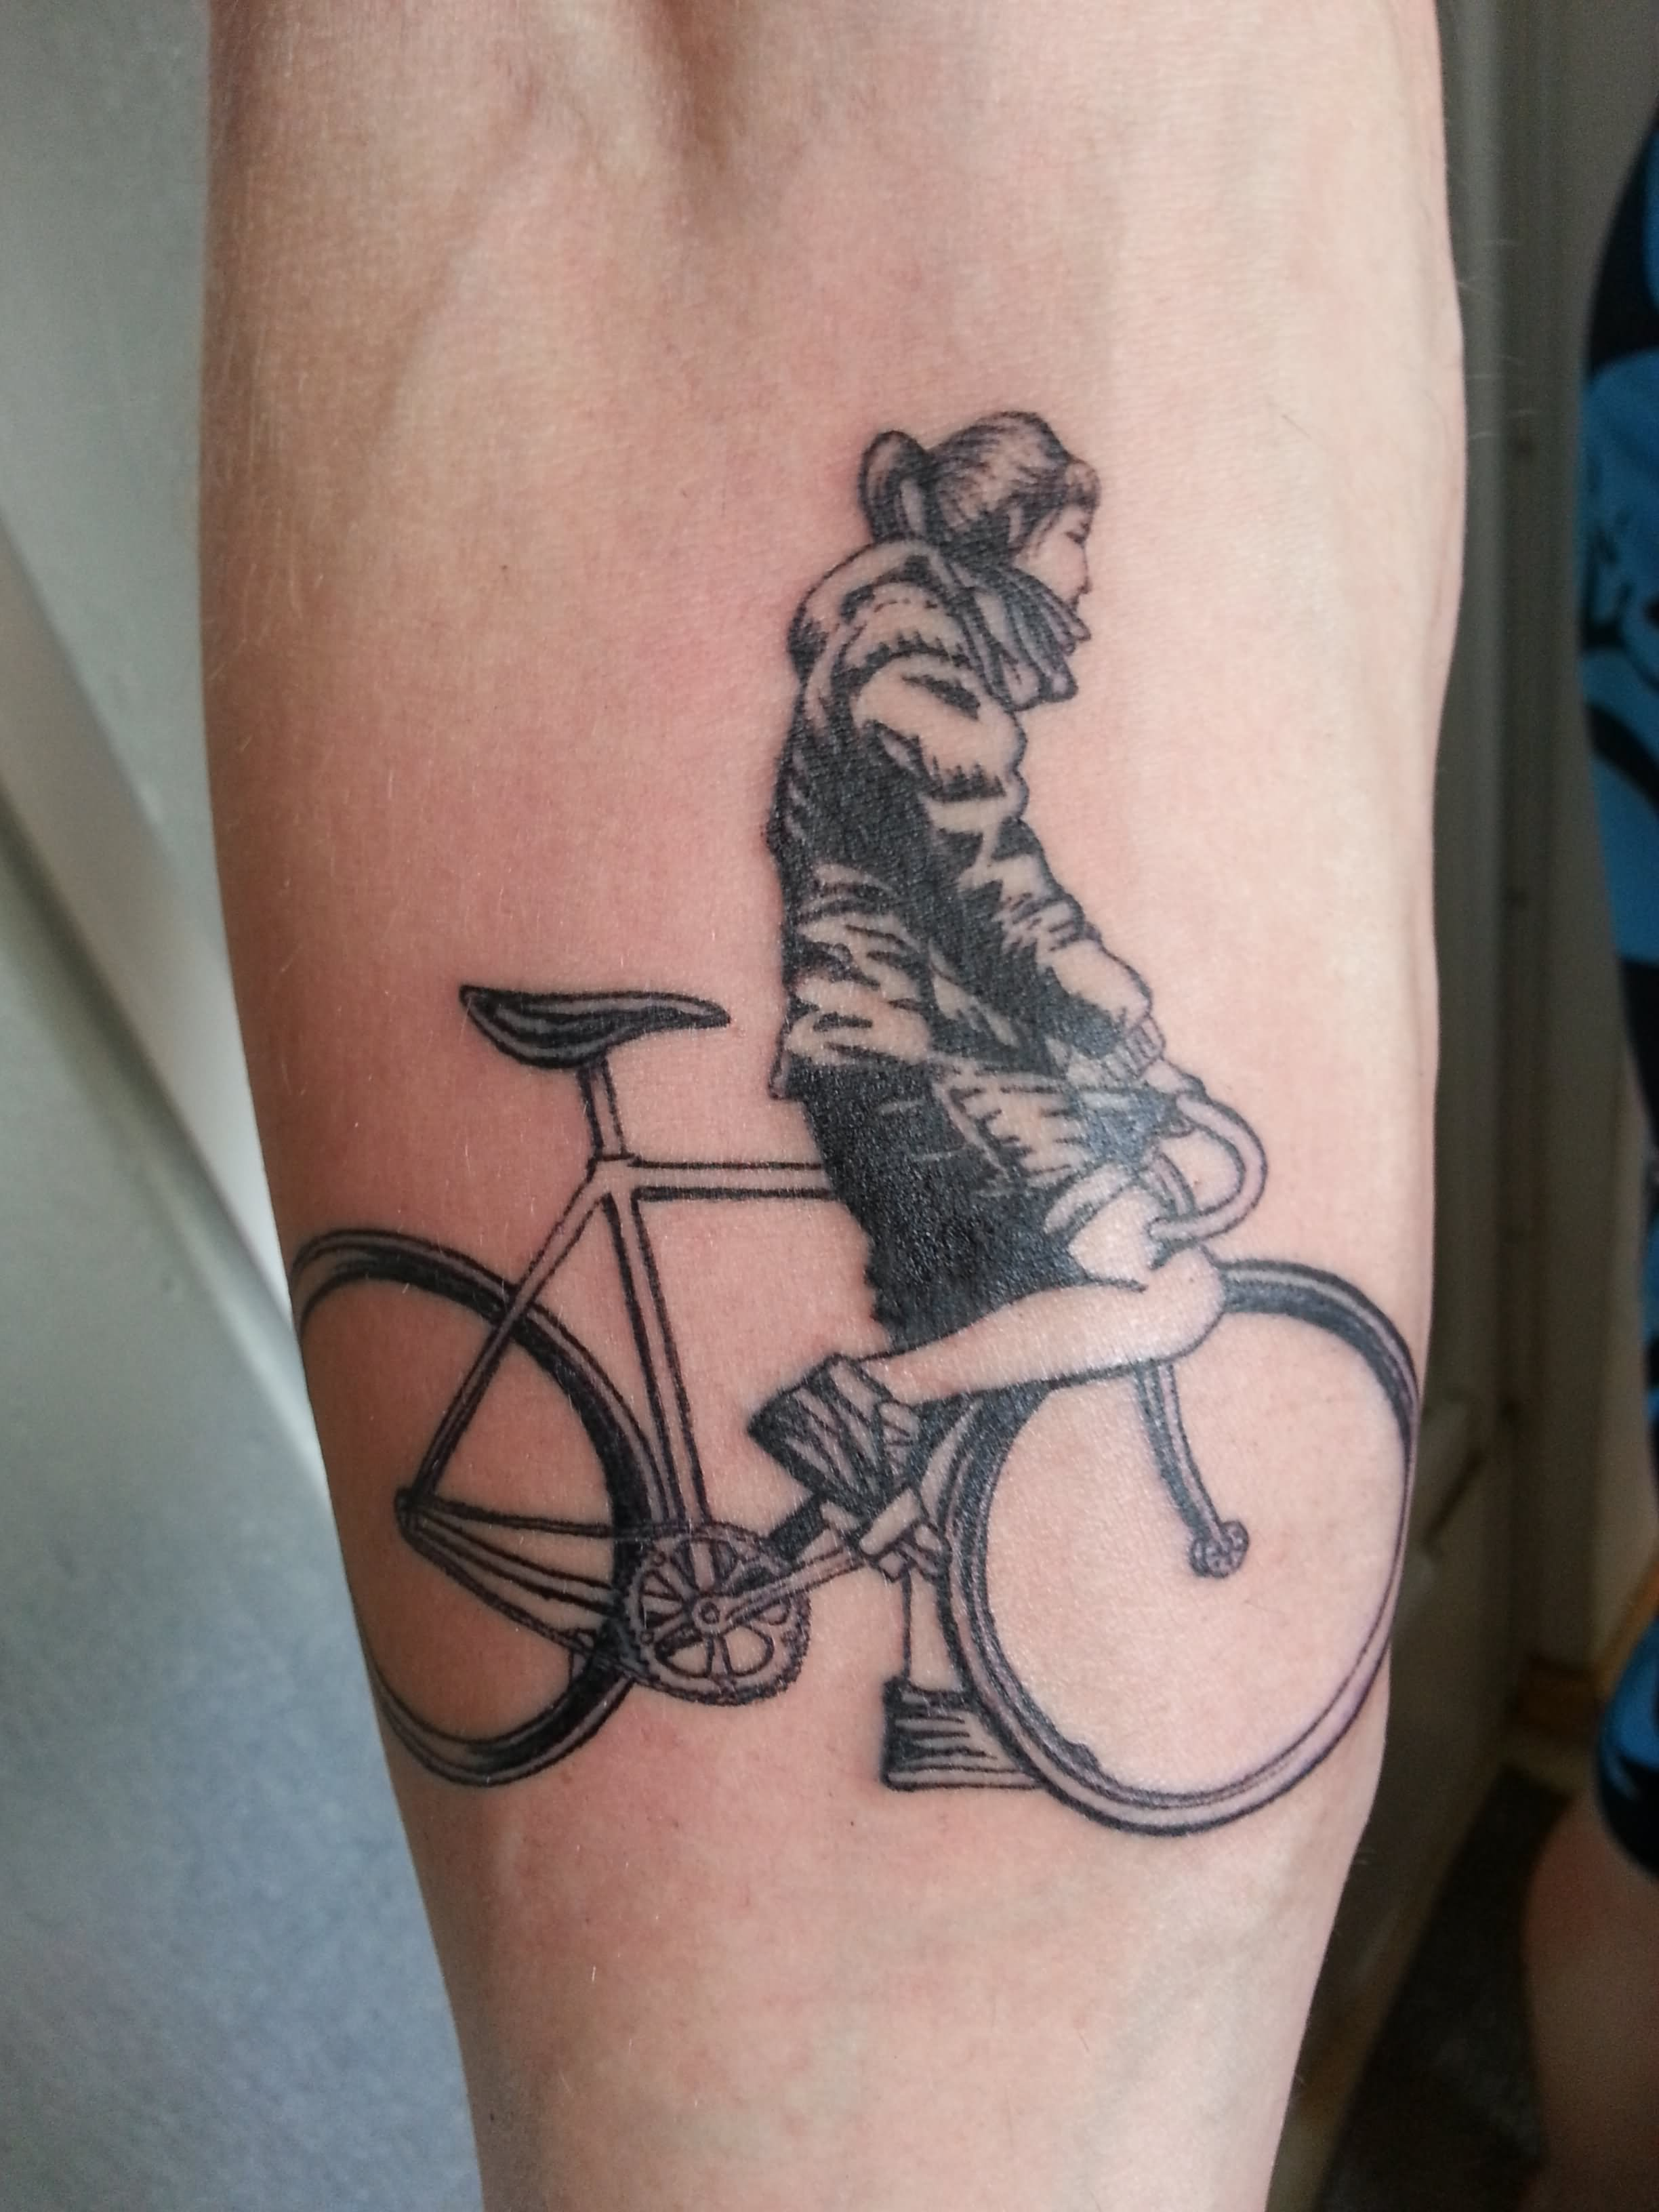 40 Cool Mountain Bike Tattoos Ideas And Designs